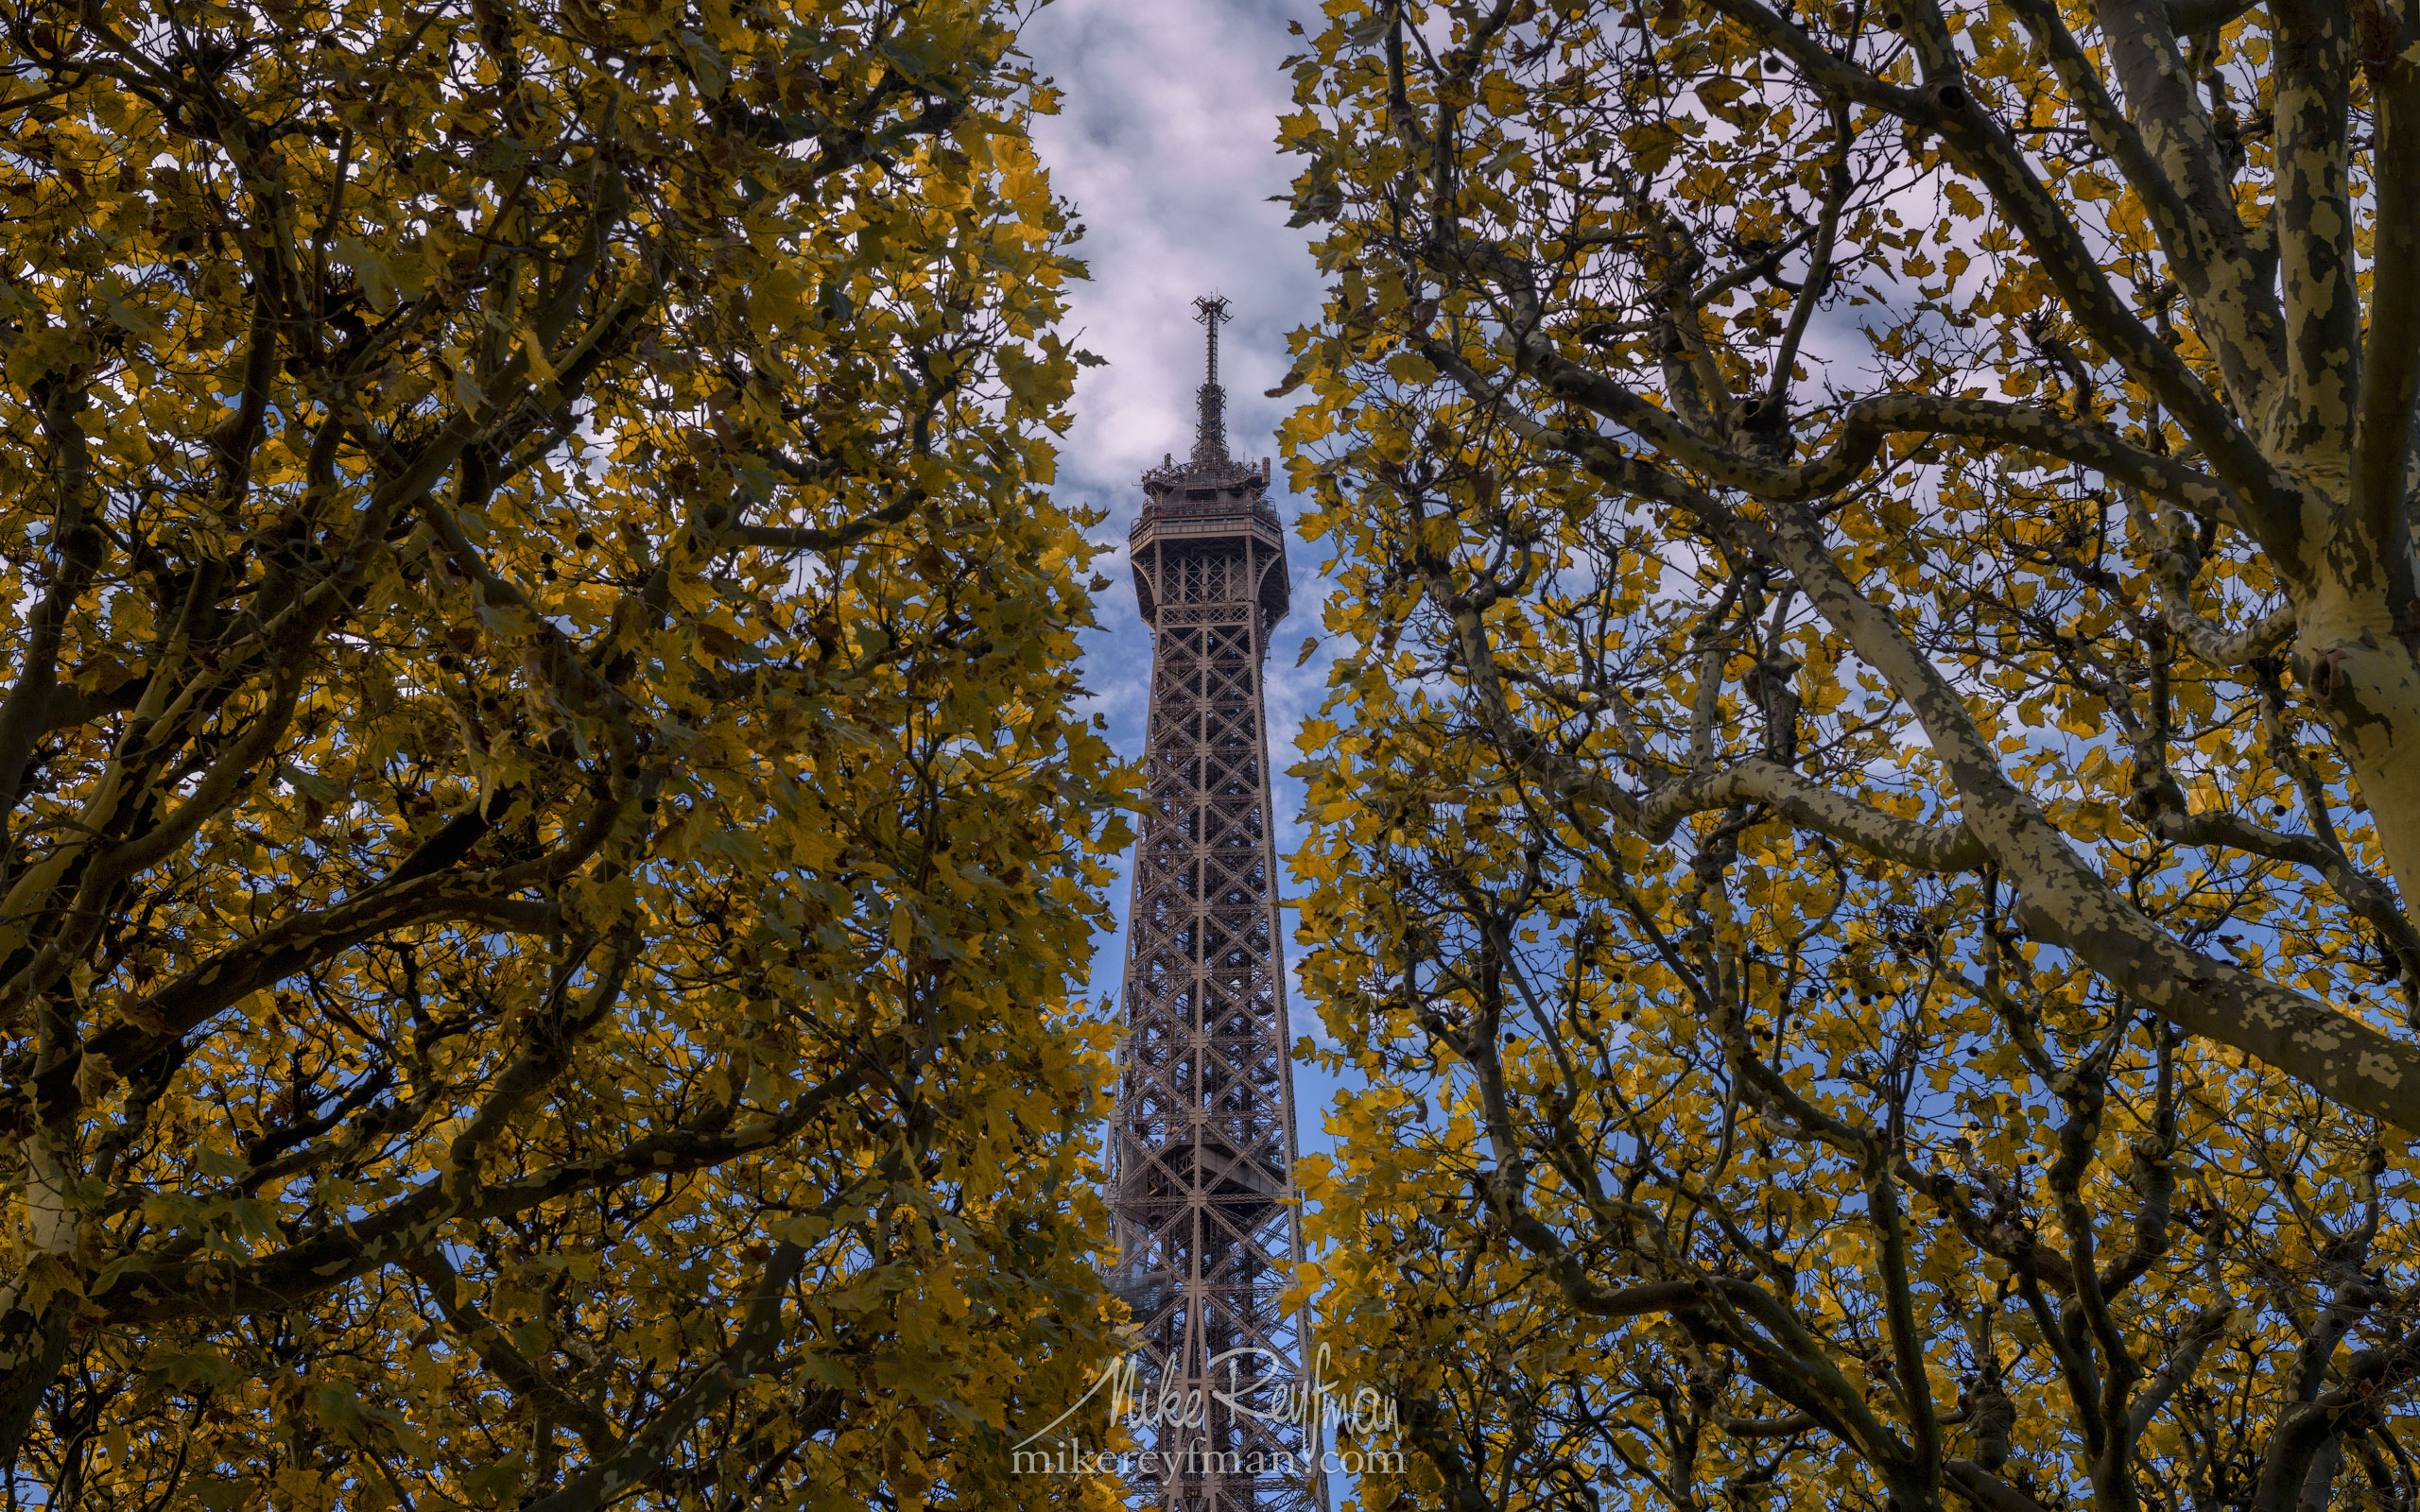 The Eiffel Tower. Champ de Mars, Paris, France FR1-MR50A1712 - Symmetries and Beyond. Random photos. France. - Mike Reyfman Photography